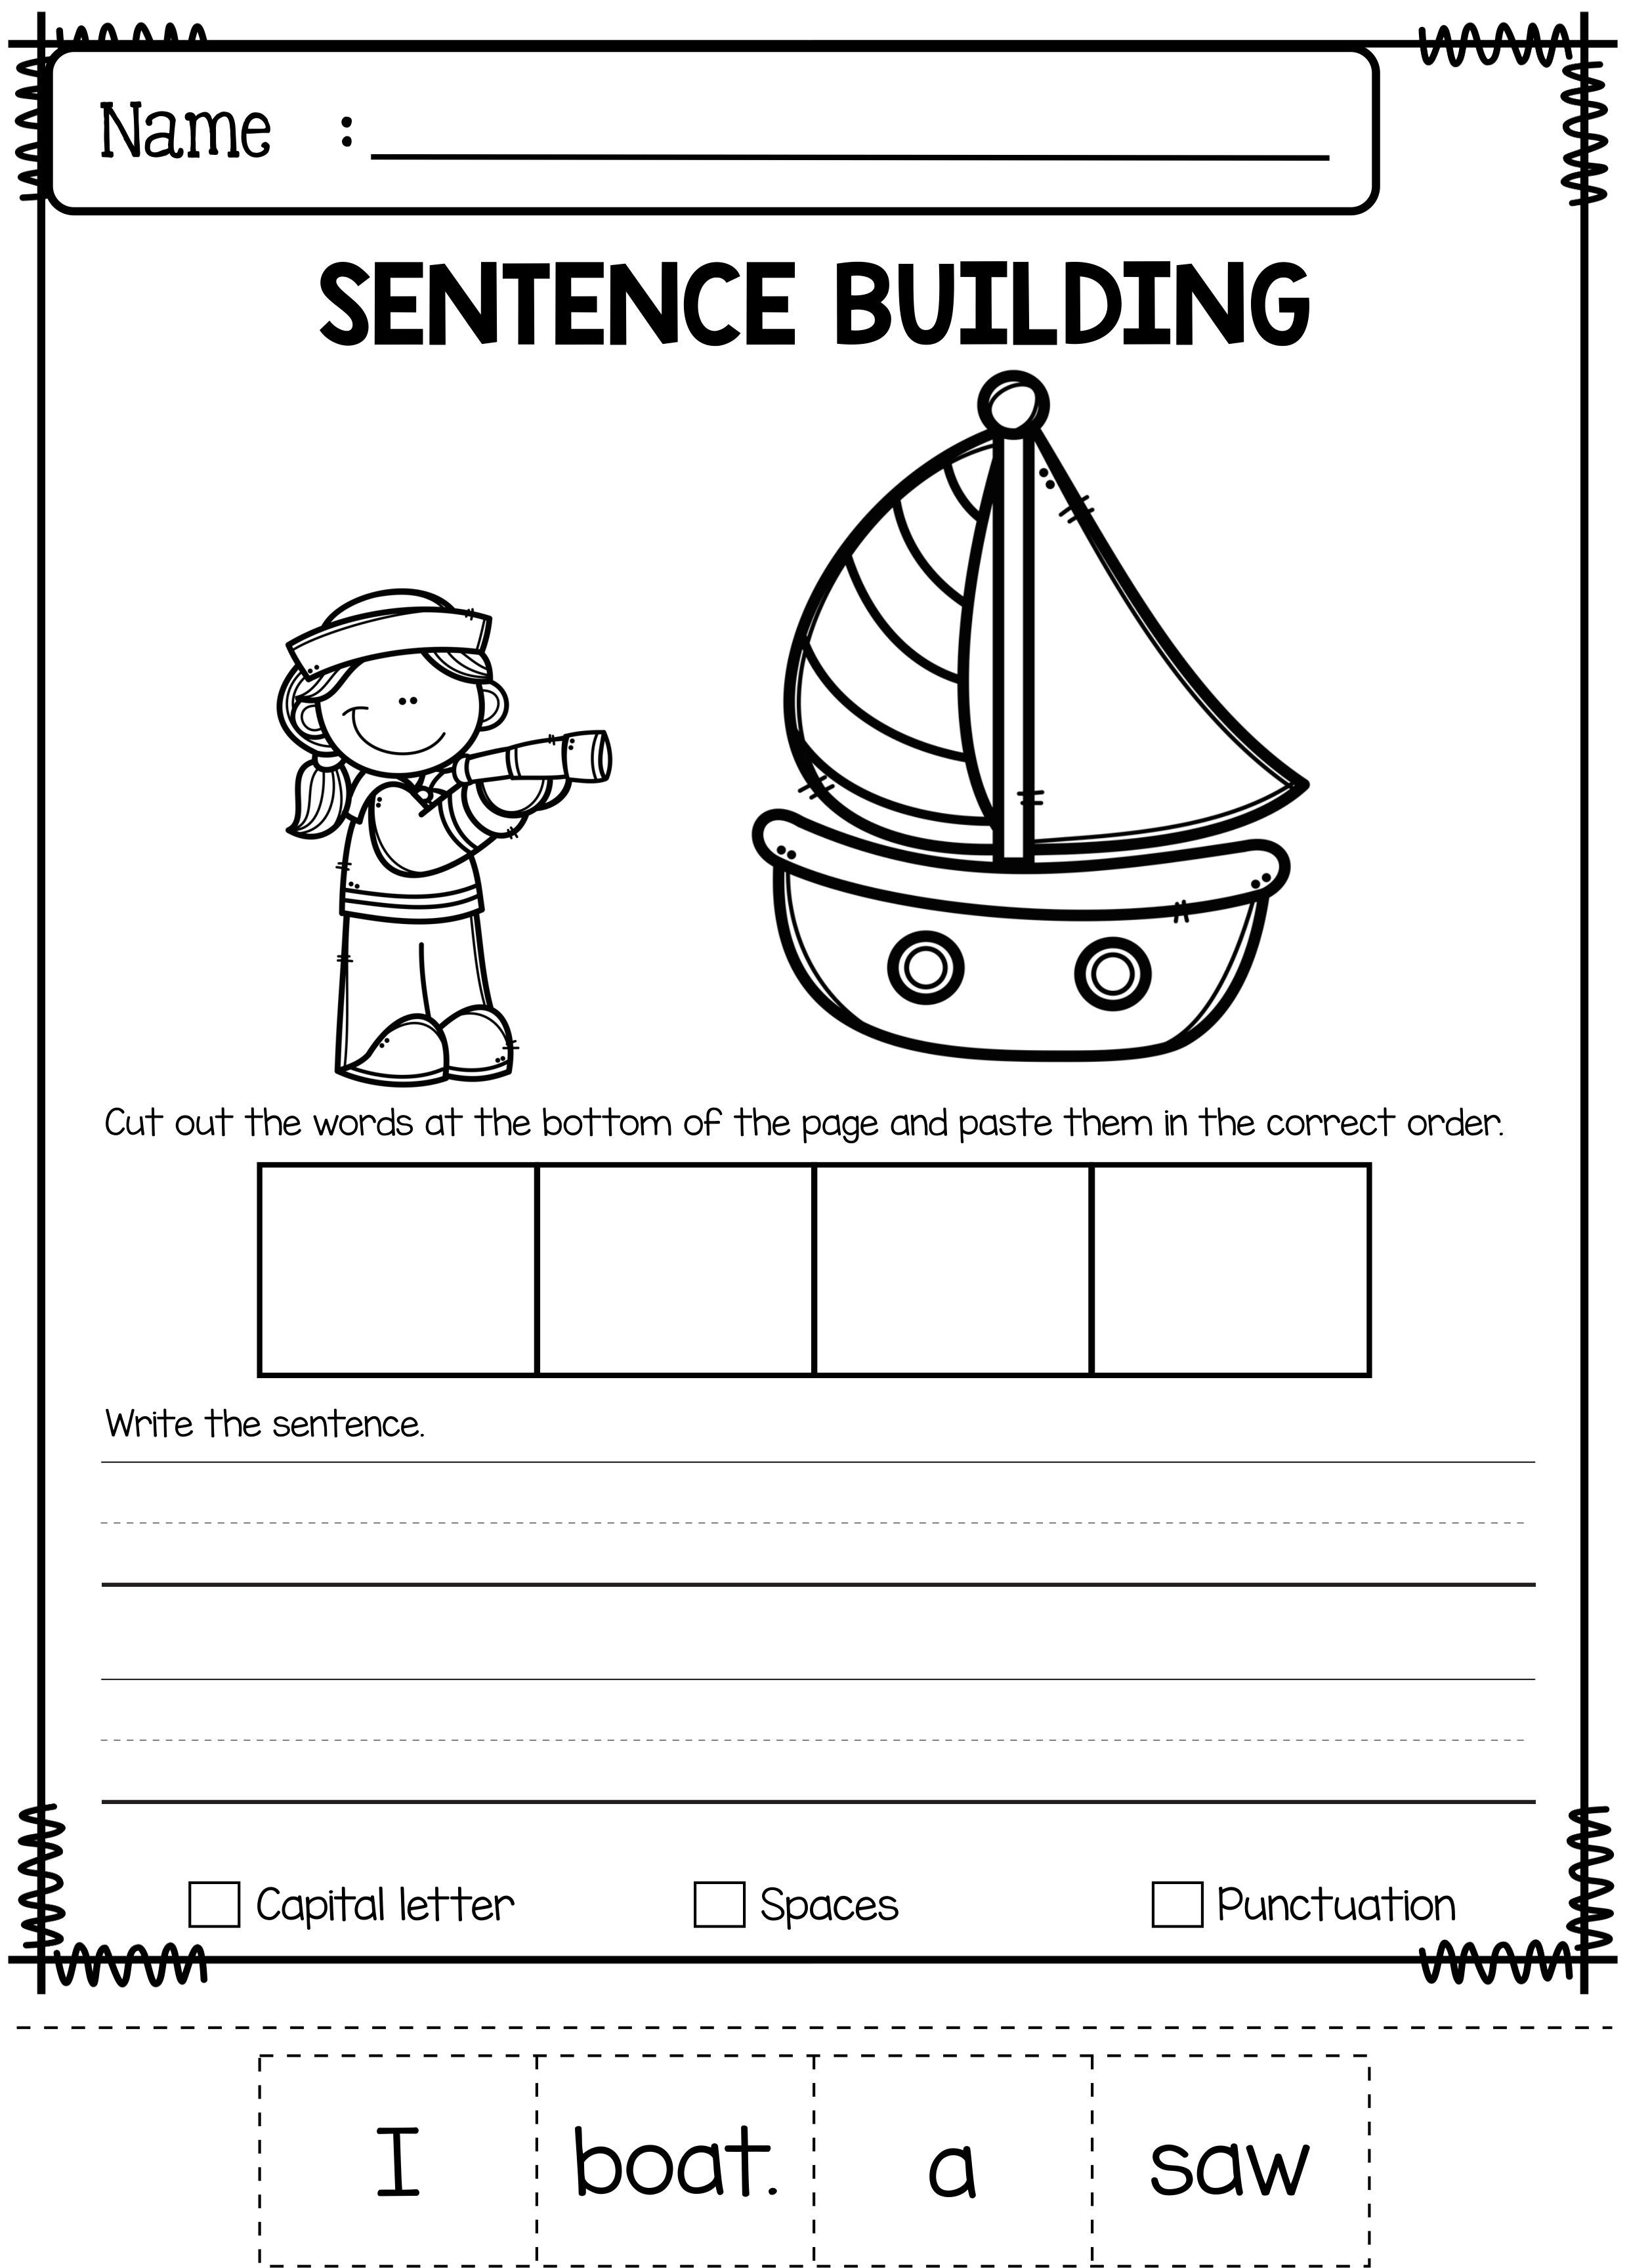 Worksheets Sentence Building Worksheets june sentence building education pinterest kindergarten has 30 pages of worksheets this product will teach children